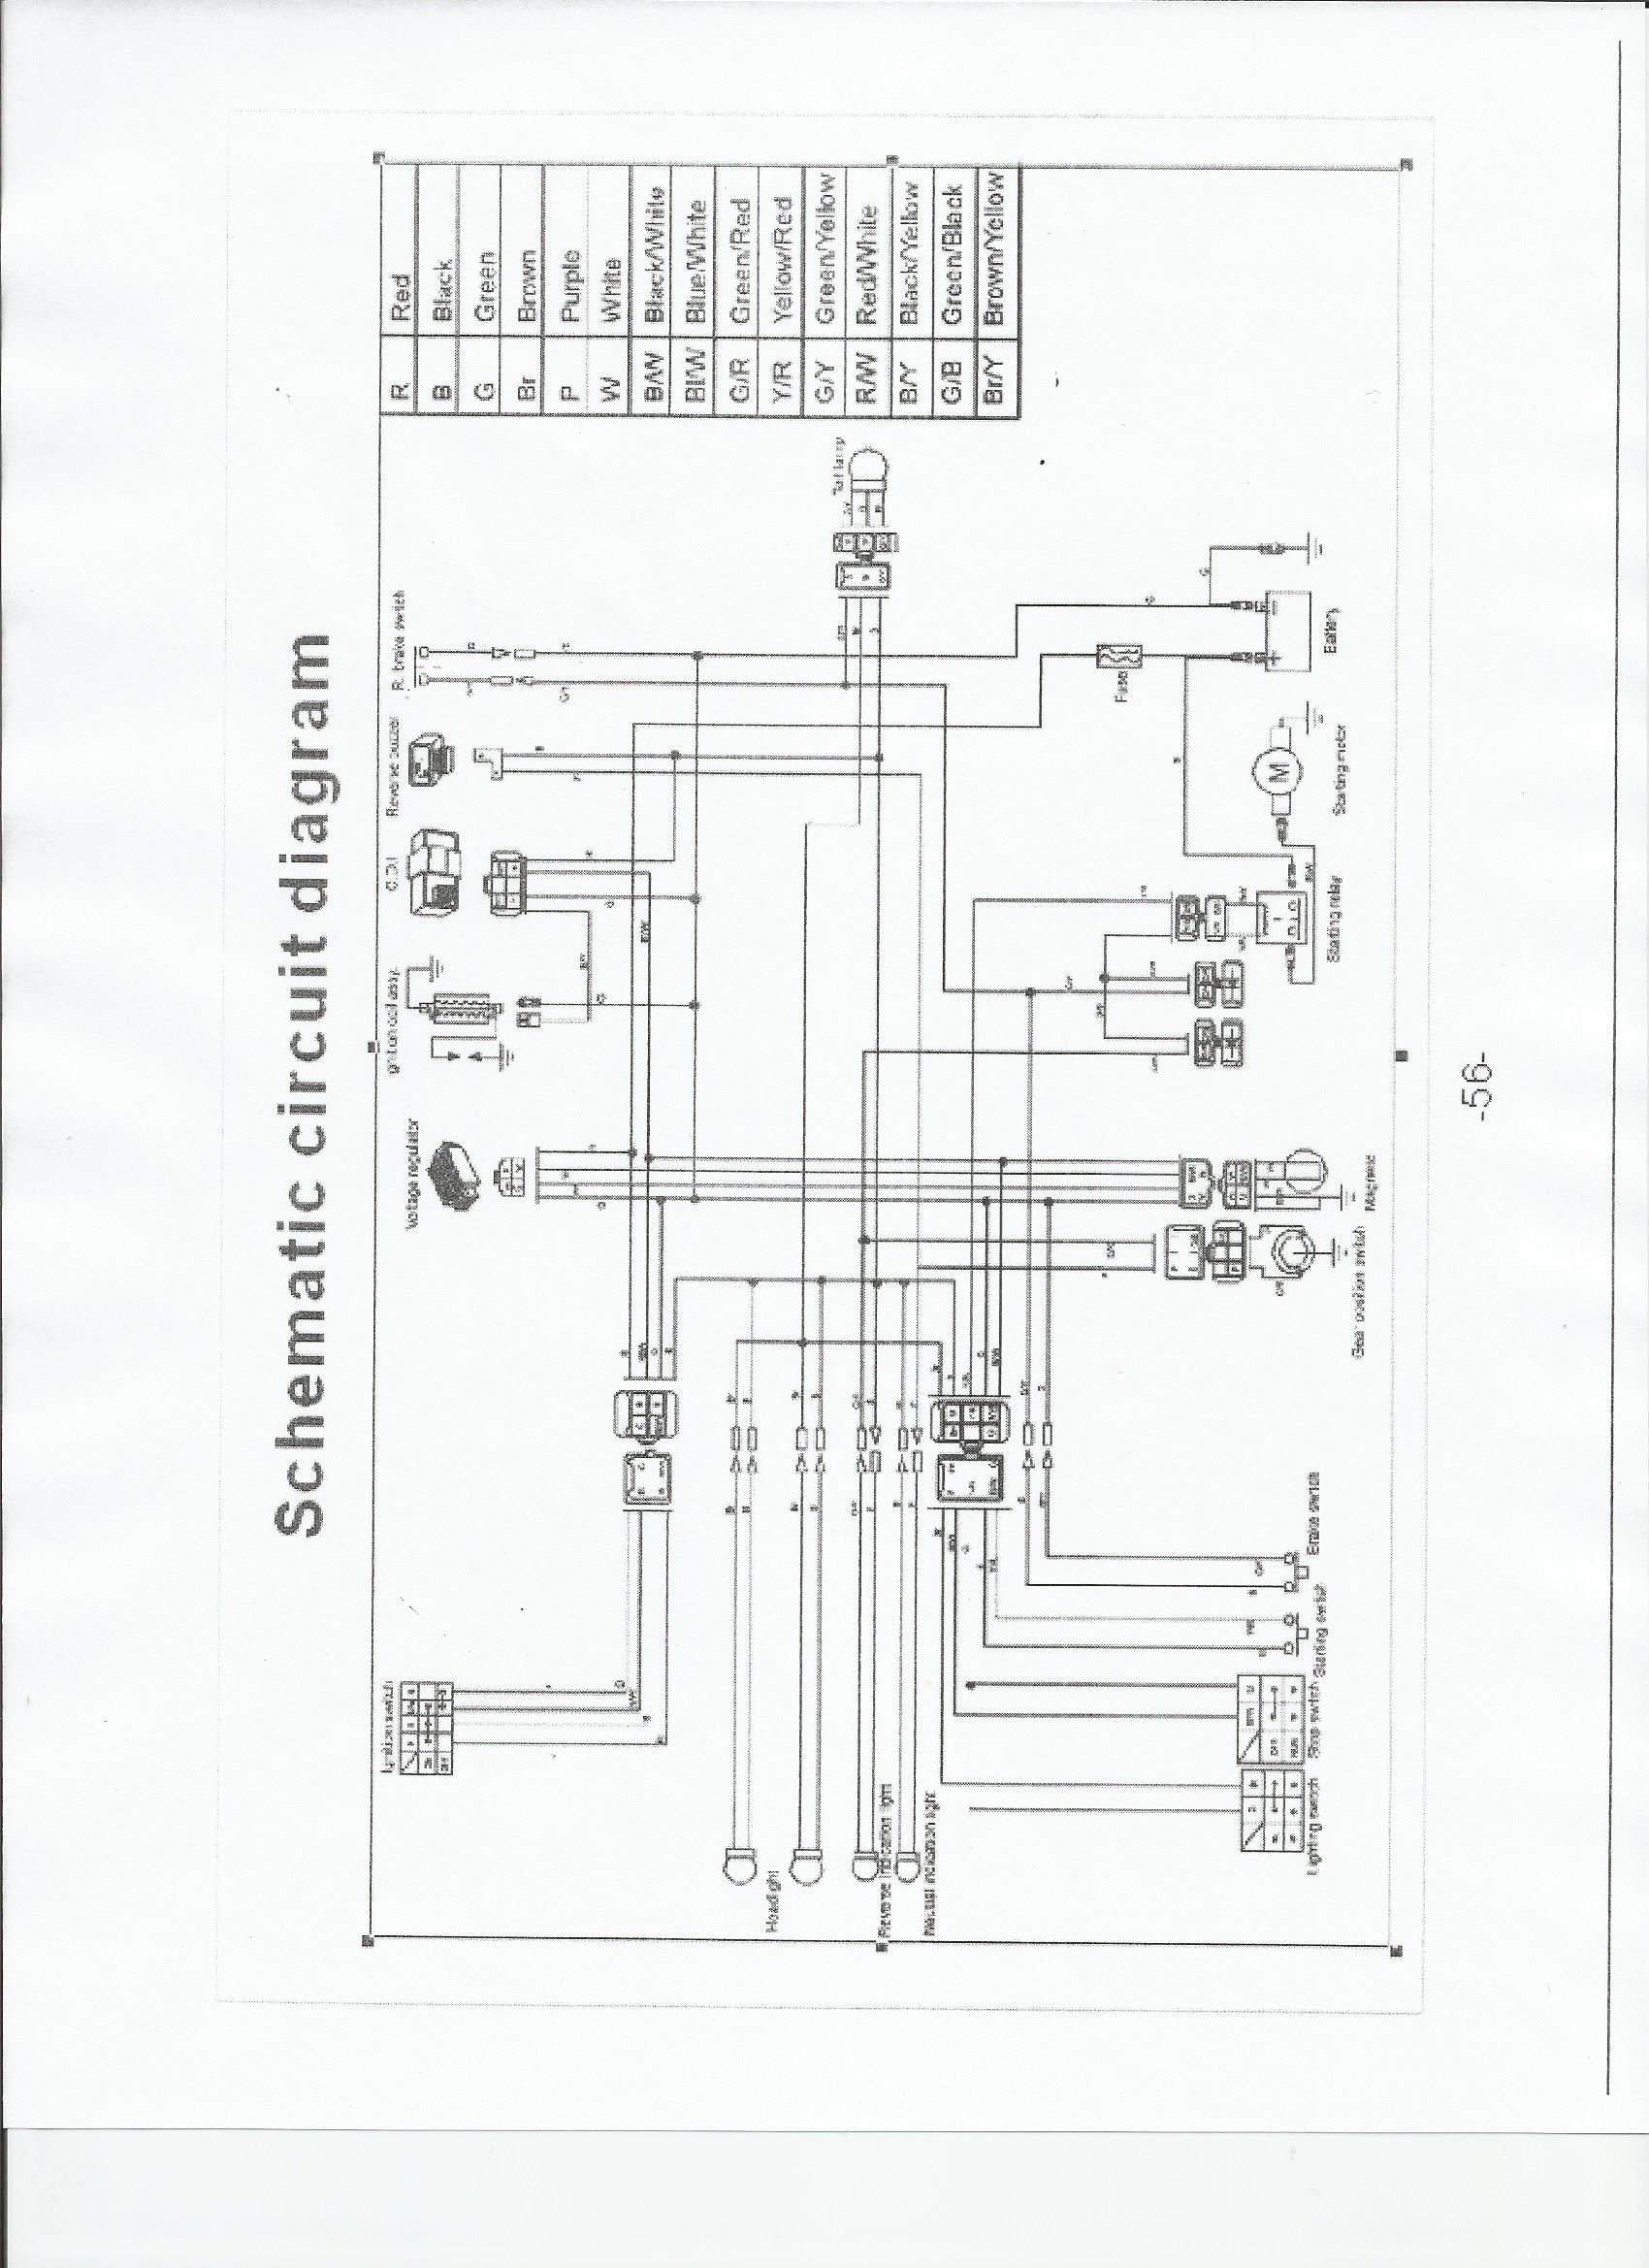 tao tao wiring schematic taotao mini and youth atv wiring schematic familygokarts support  at gsmx.co